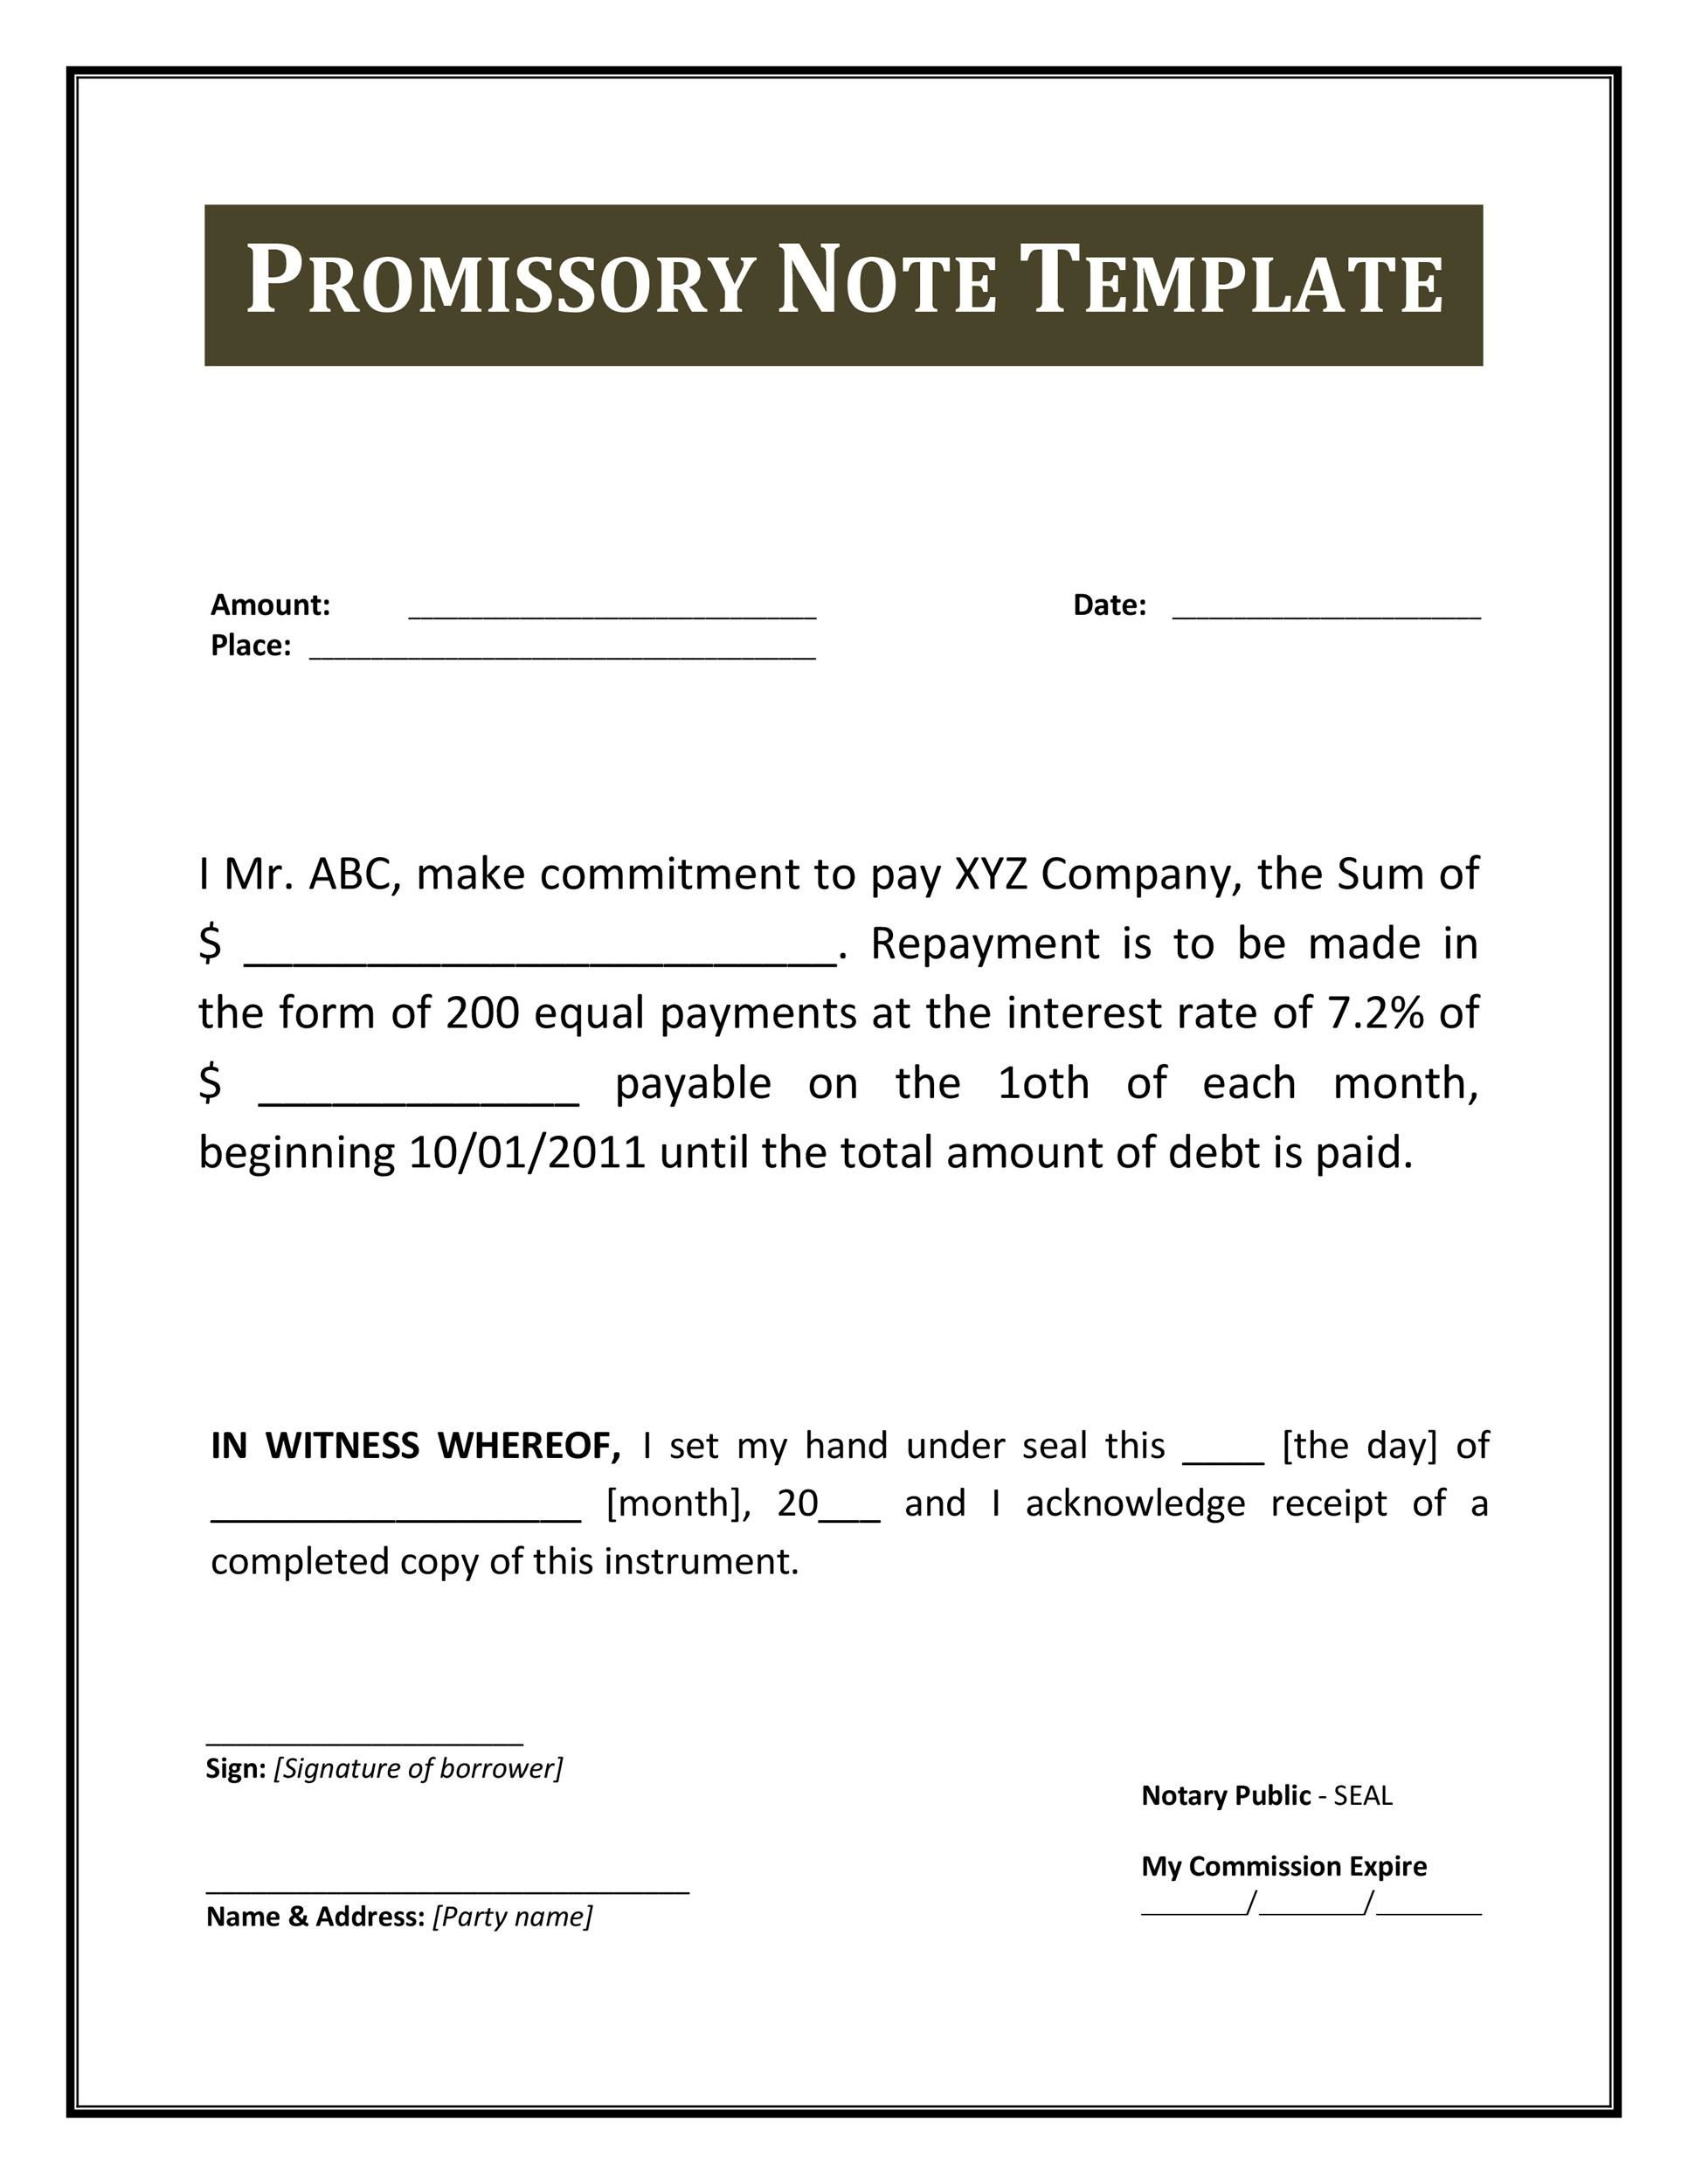 007 Dreaded Promissory Note Template Free High Resolution  Printable Blank Form Download Pdf CanadaFull